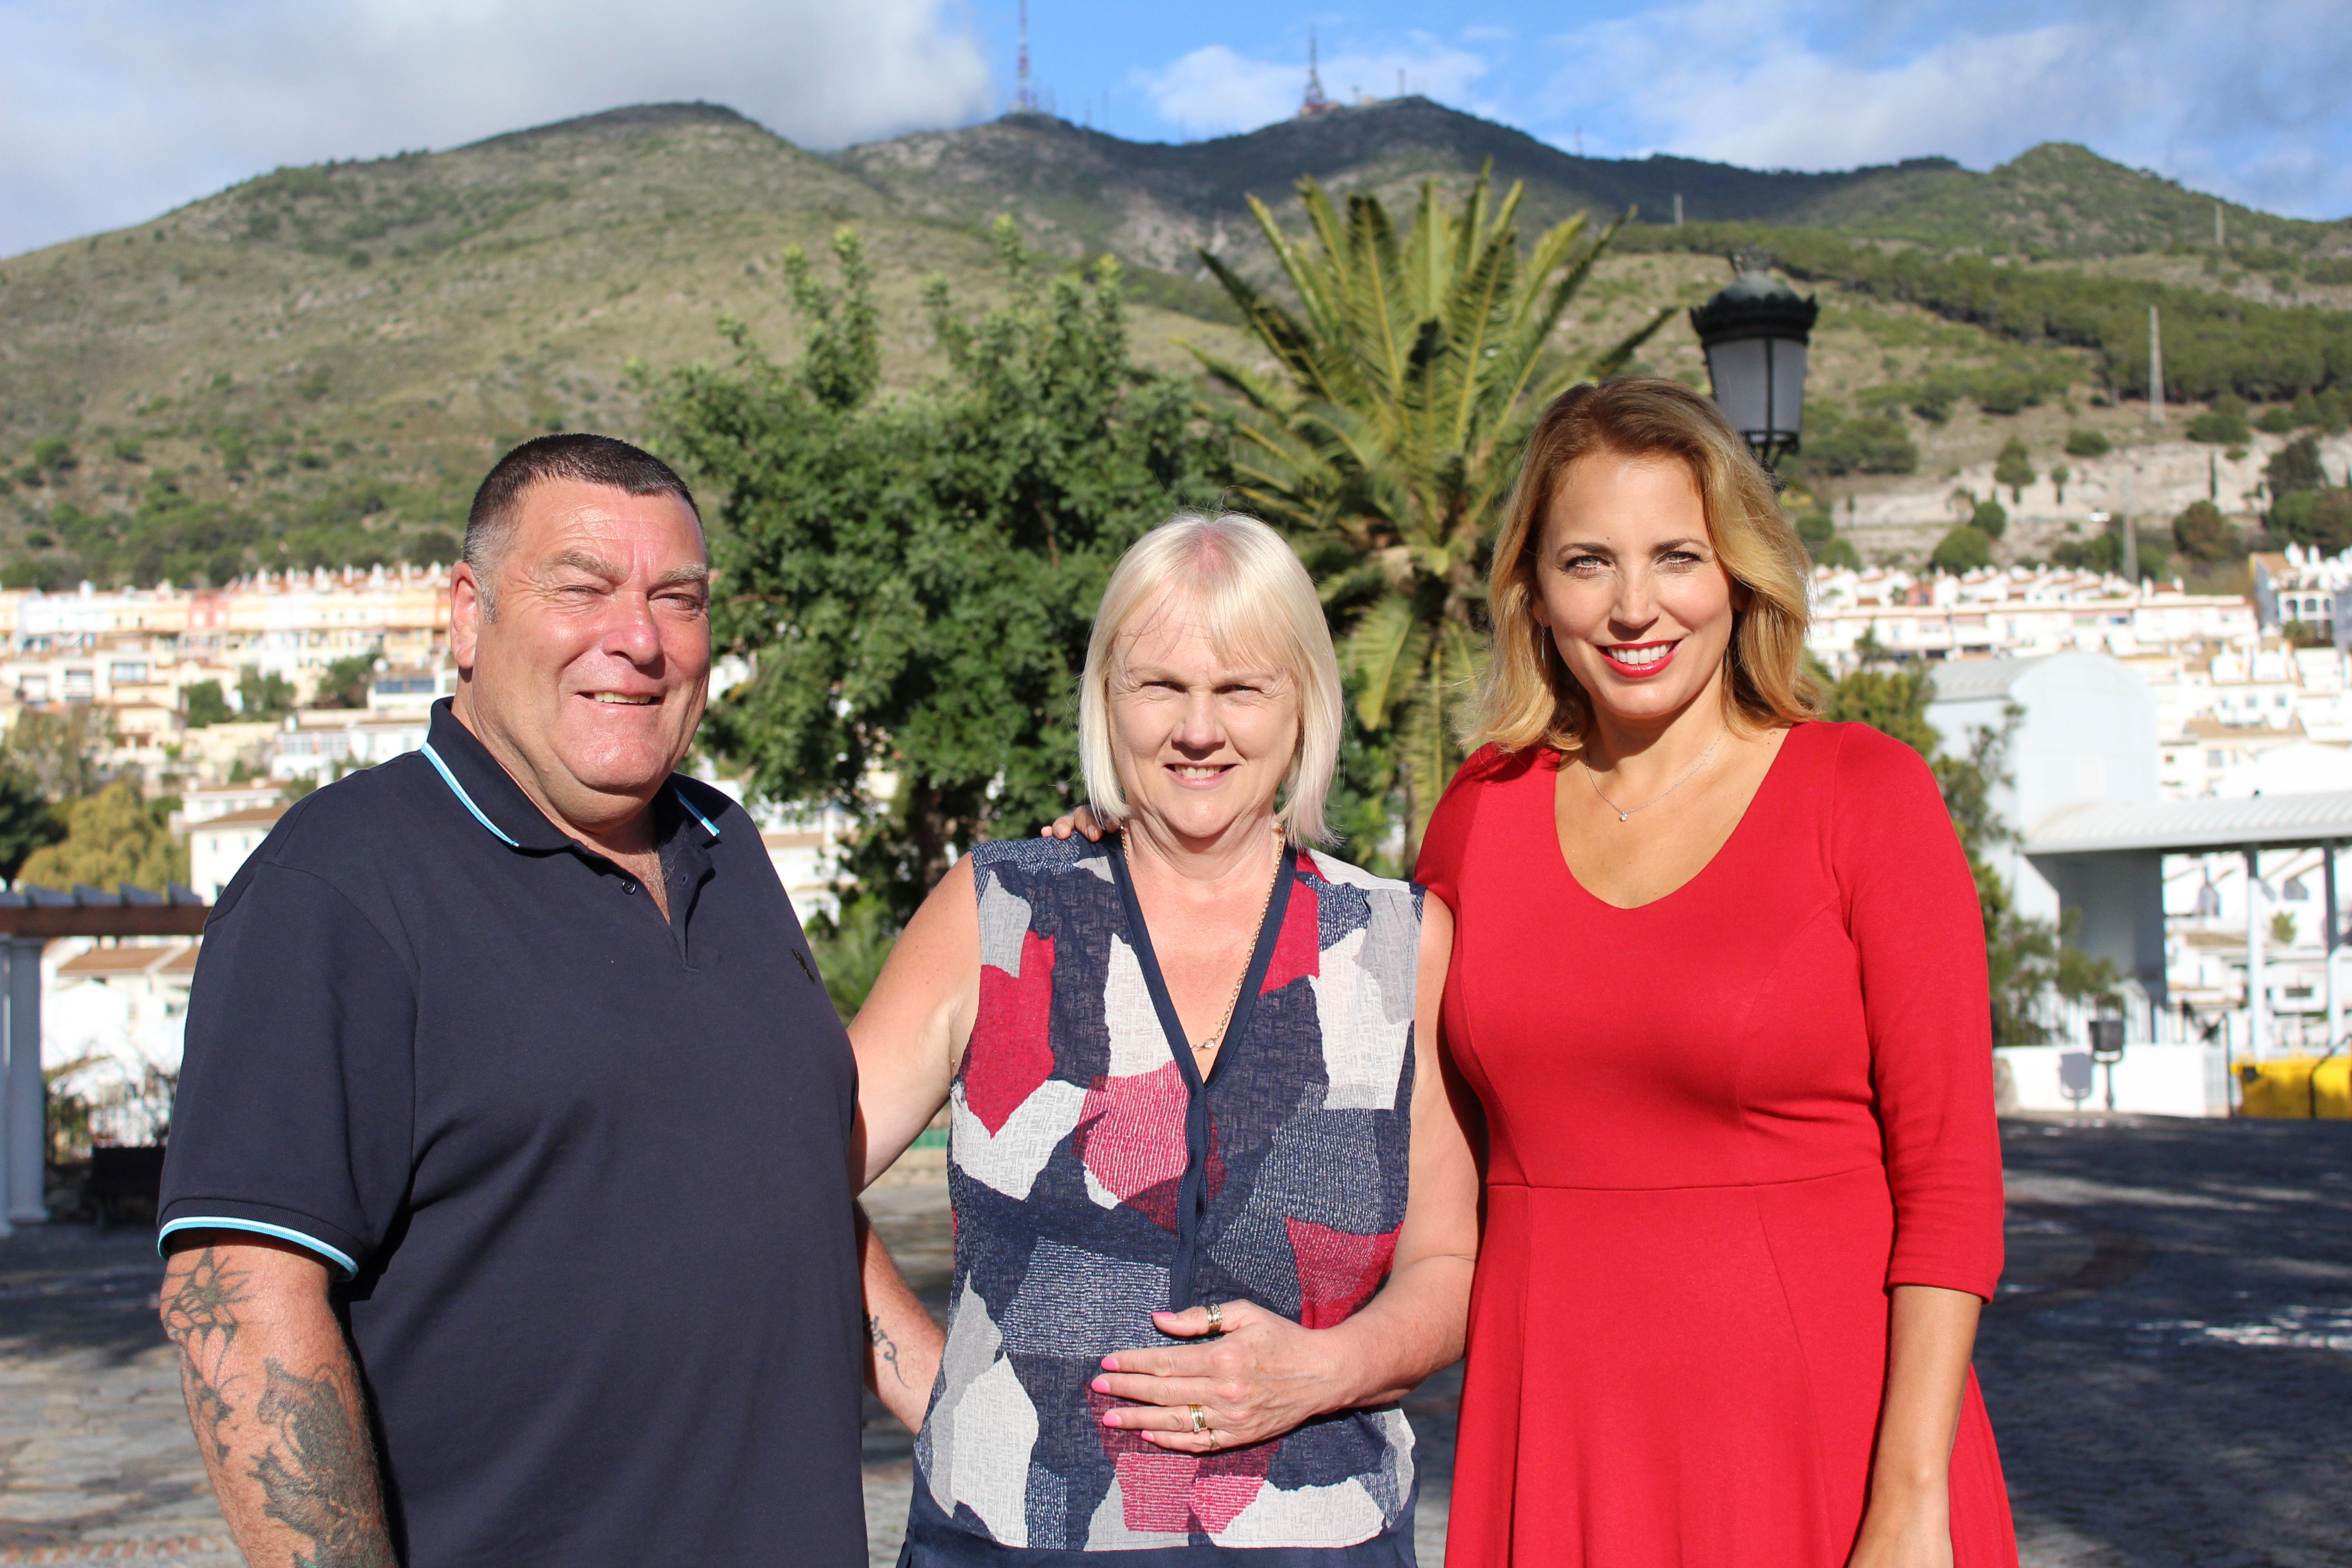 Benalmadena, Spain- Episode 109 on October 29th 2018- A Place in the Sun